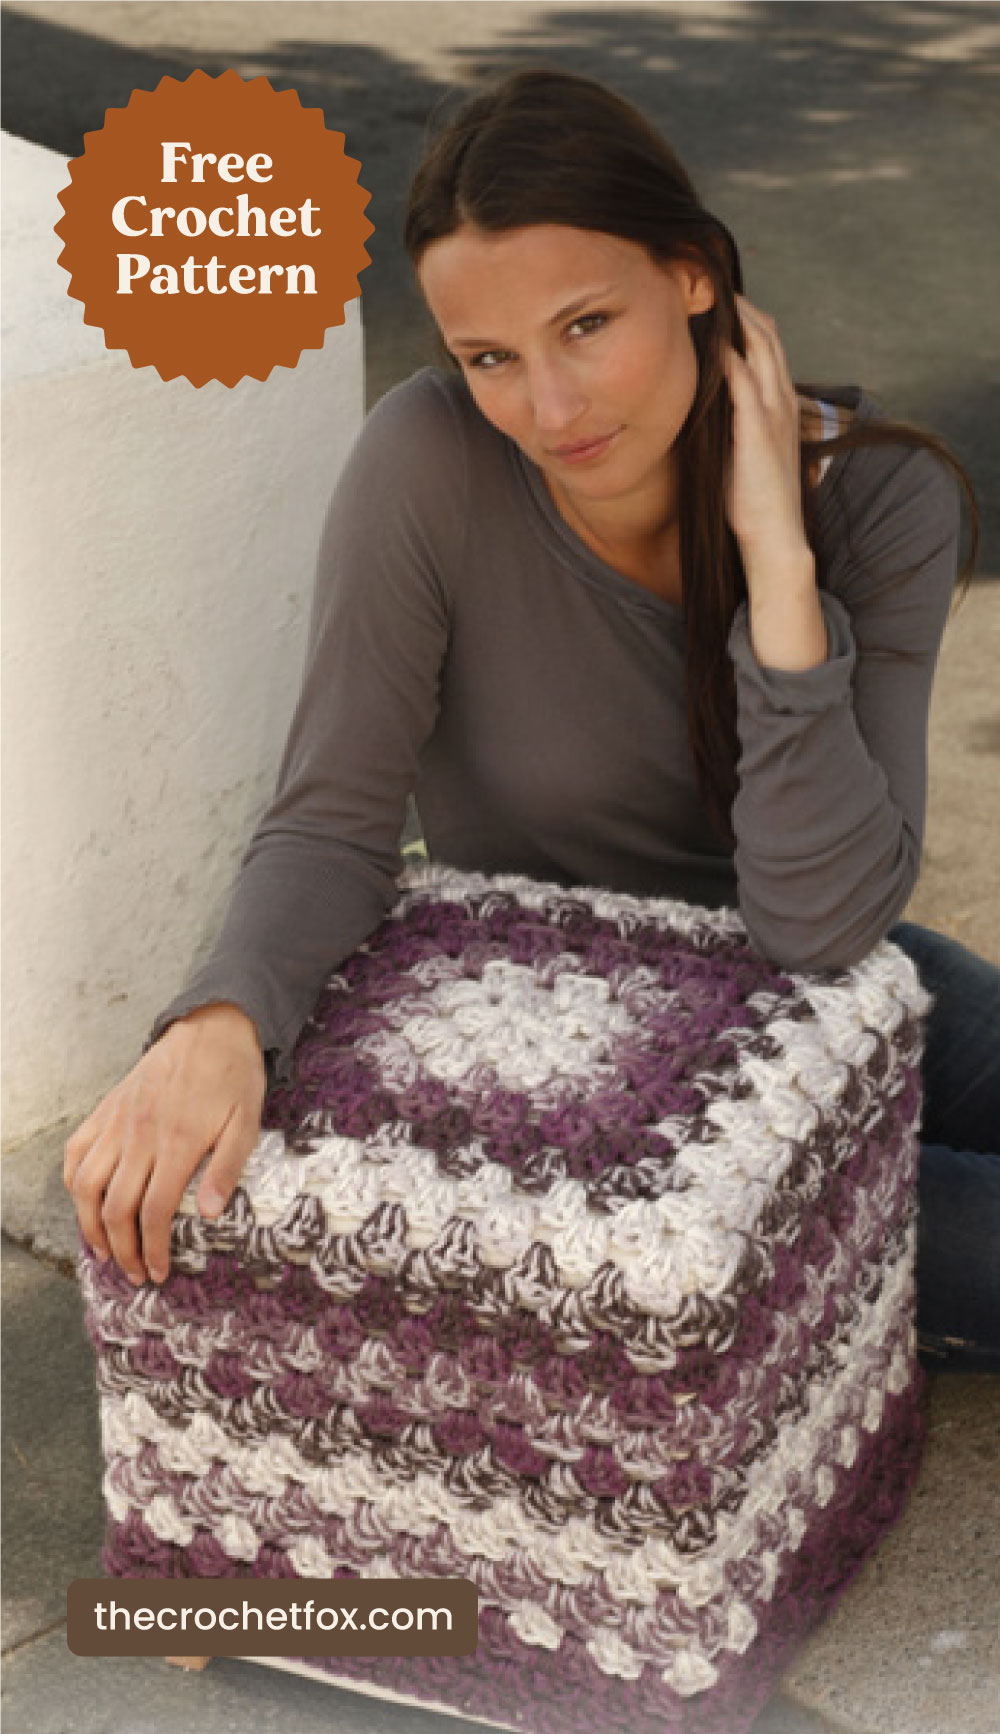 """Text area which says """"Free Crochet Pattern"""" next to a woman holding a granny square crochet pouf followed by another text area which says """"thecrochetfox.com"""""""